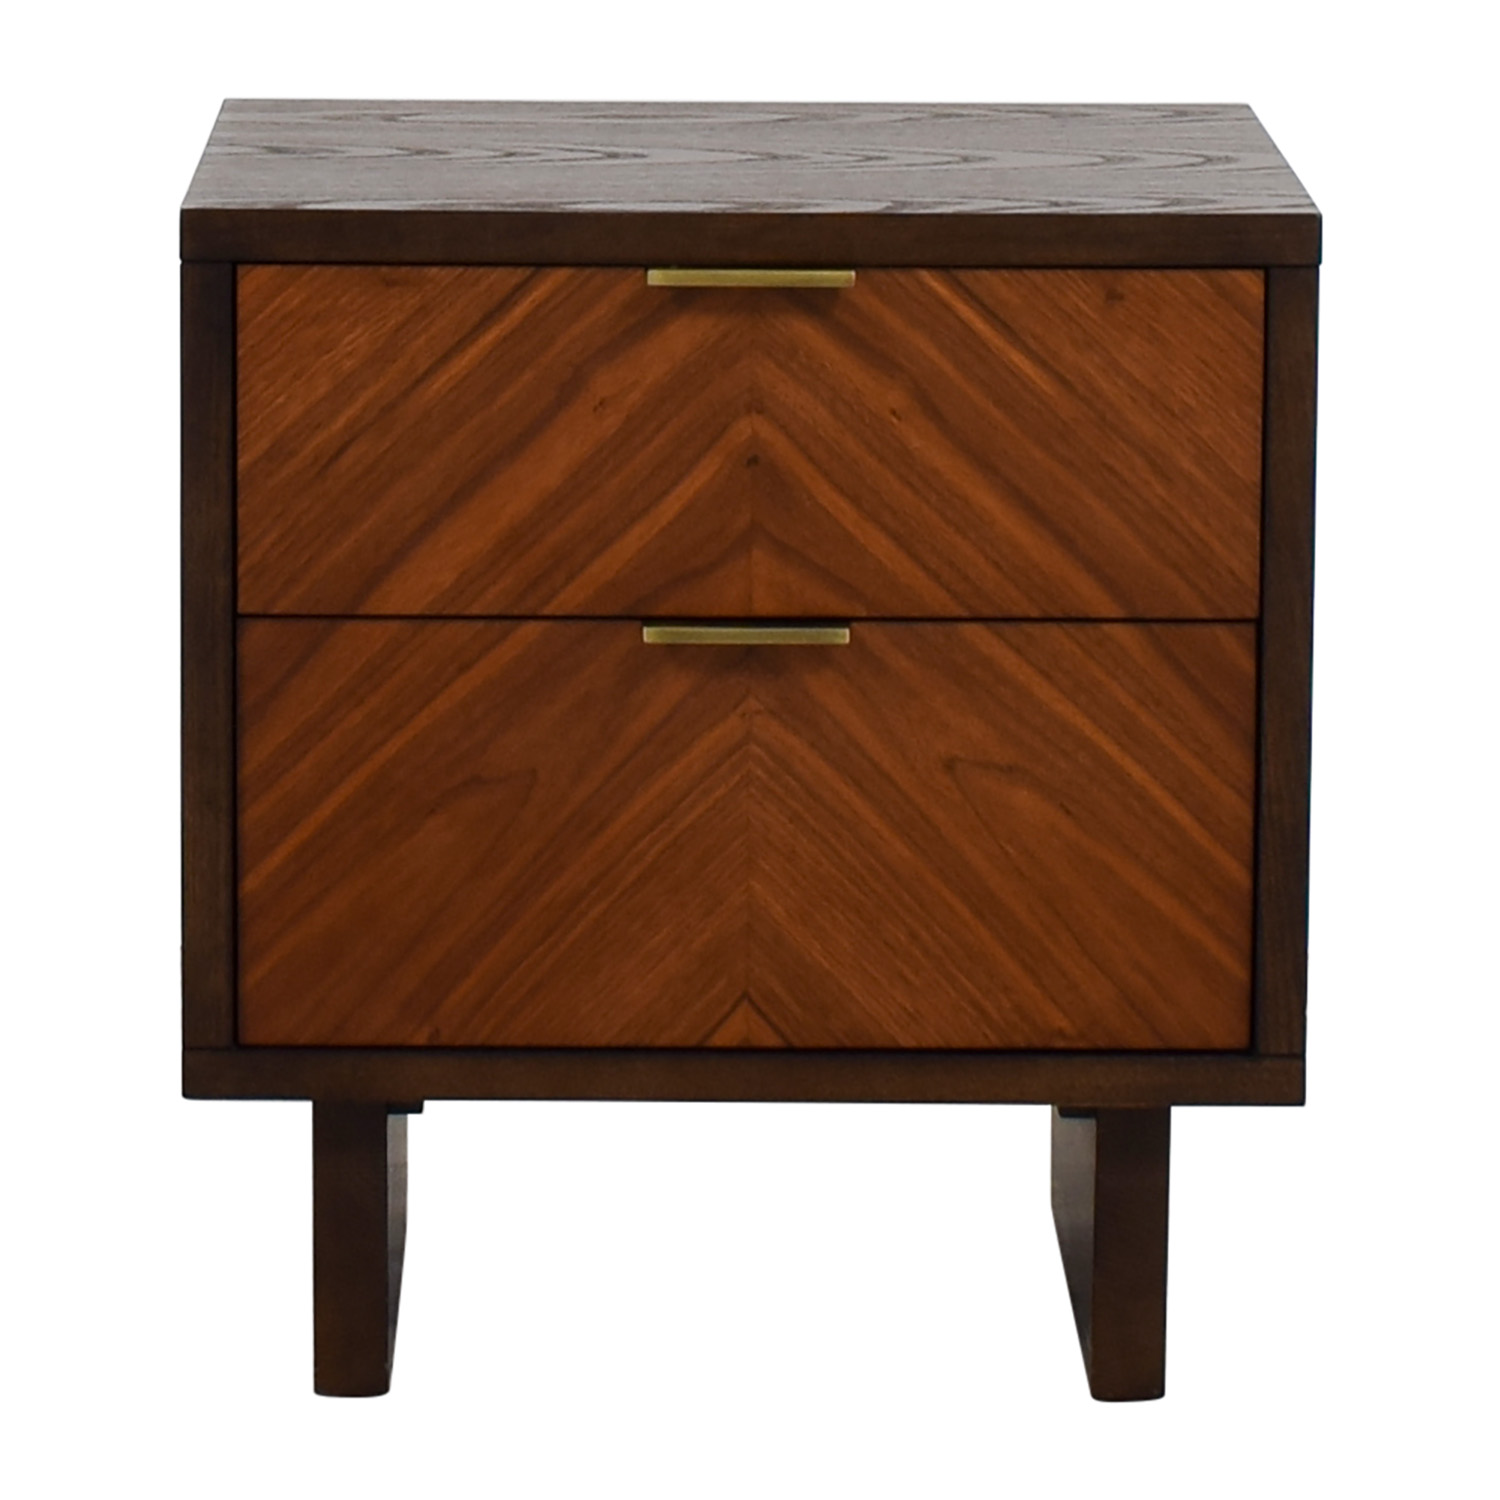 buy West Elm West Elm Chevron Nightstand online